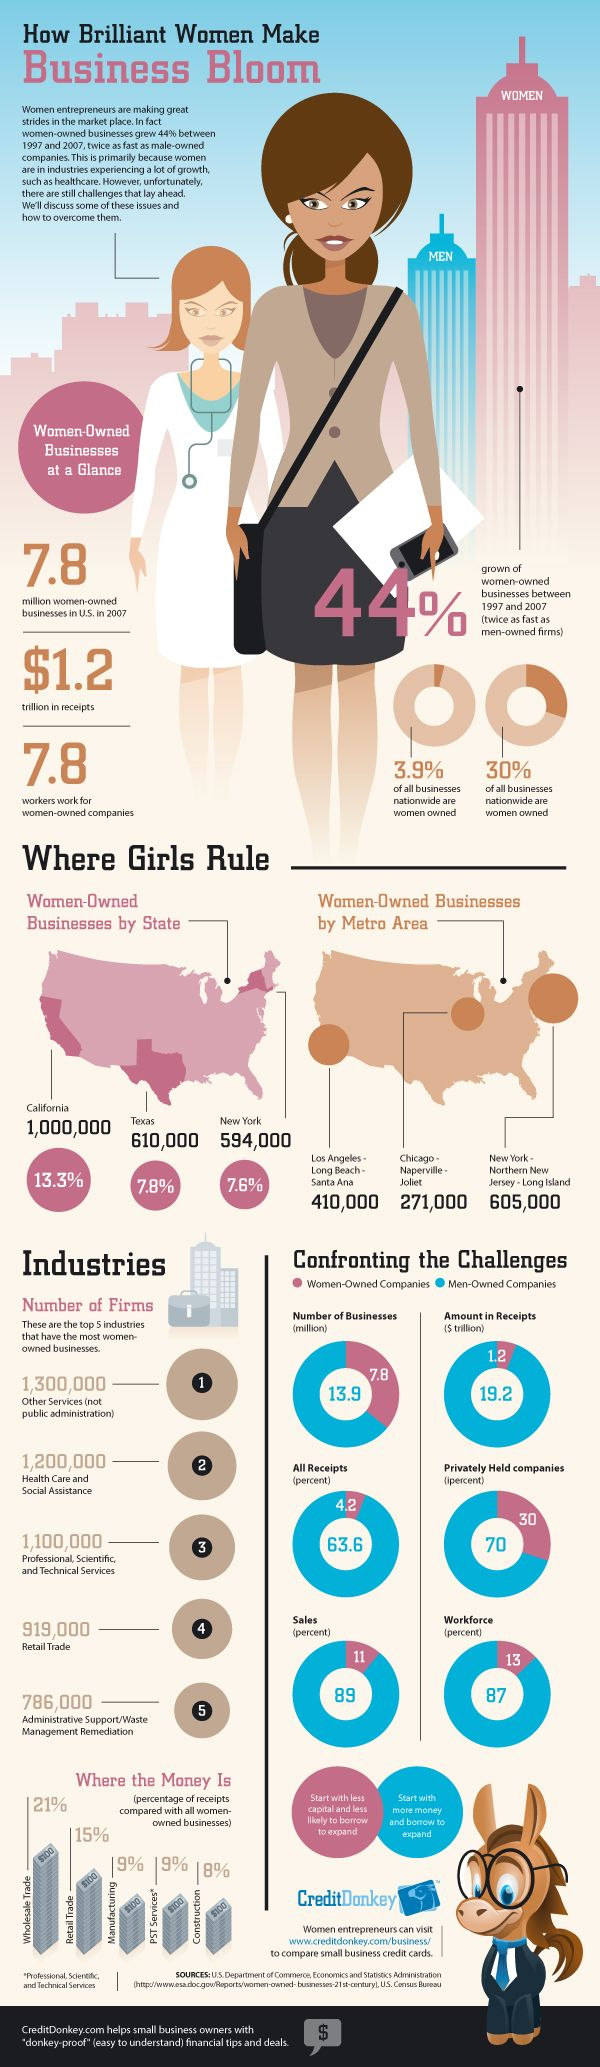 Women entrepreneurs are making waves in the business world.